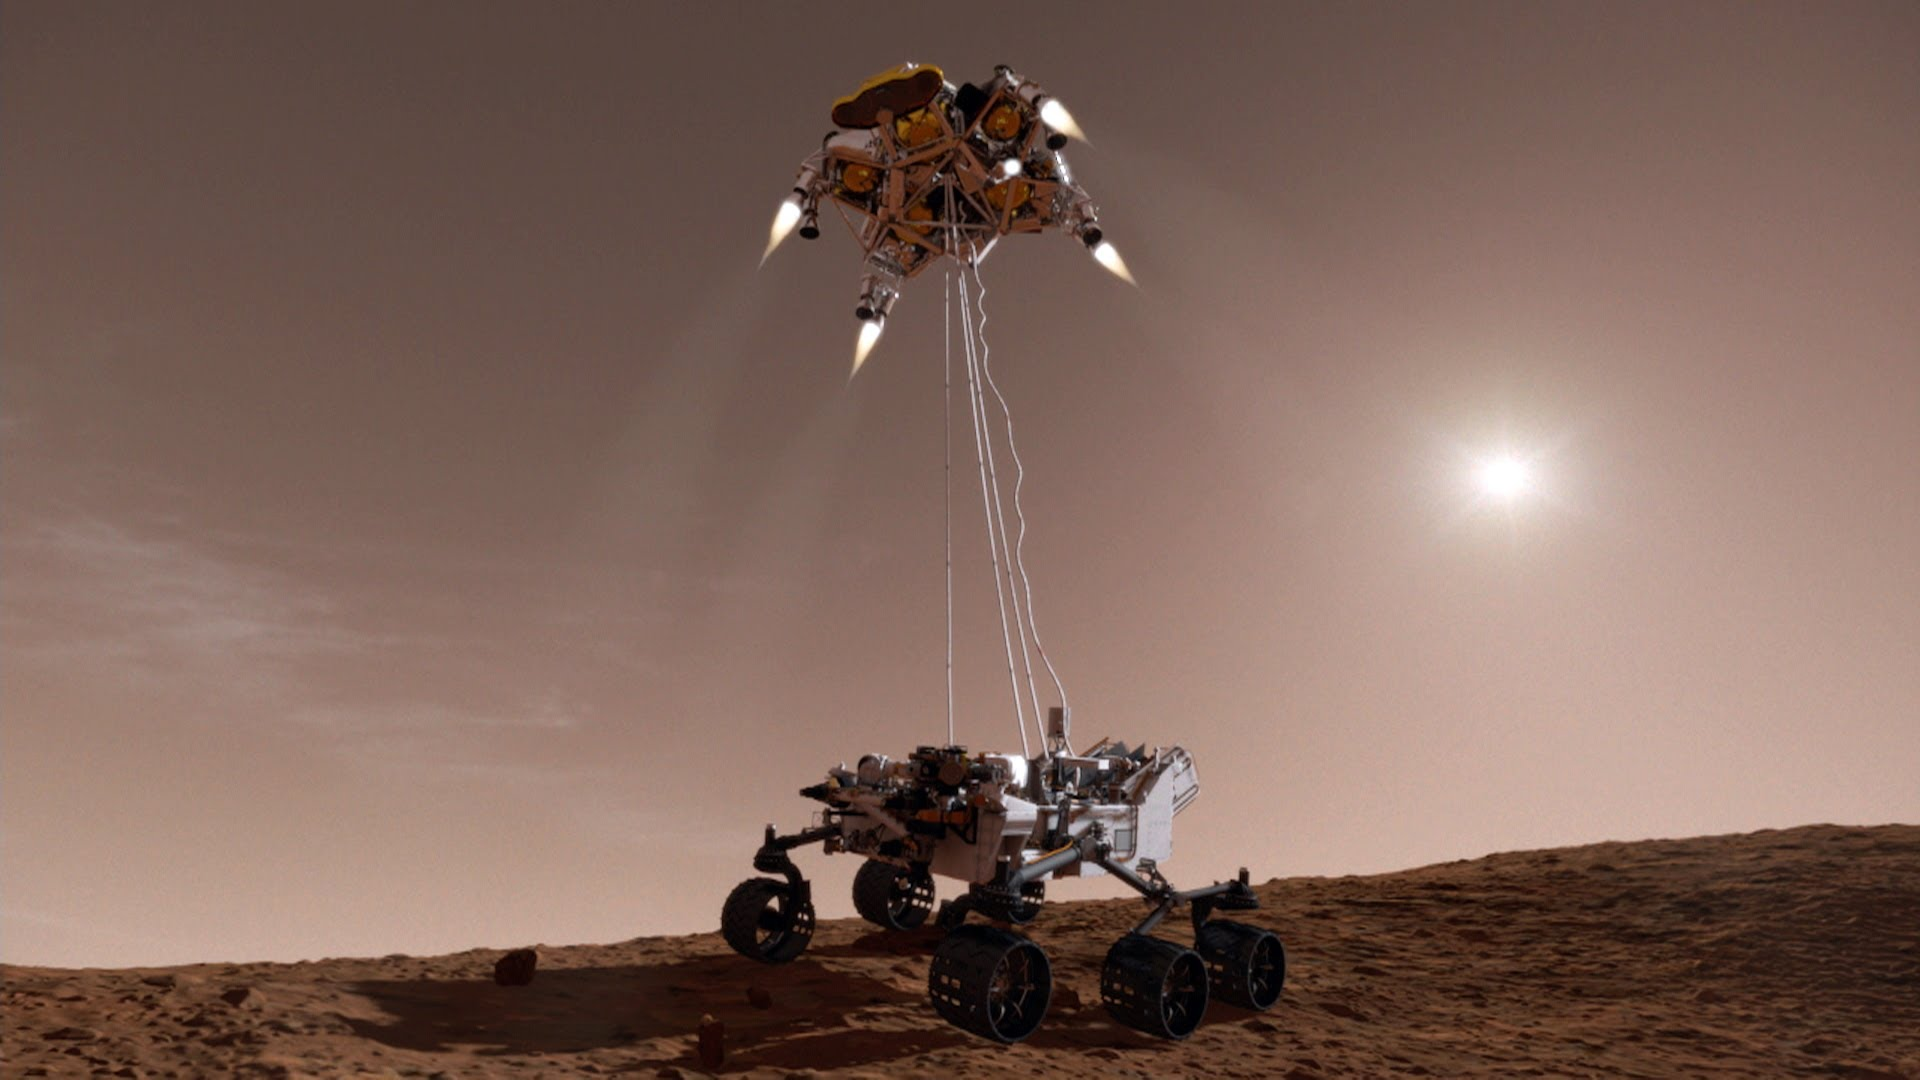 Parachutes, Sky Cranes and More: 5 Ways To Land On Mars